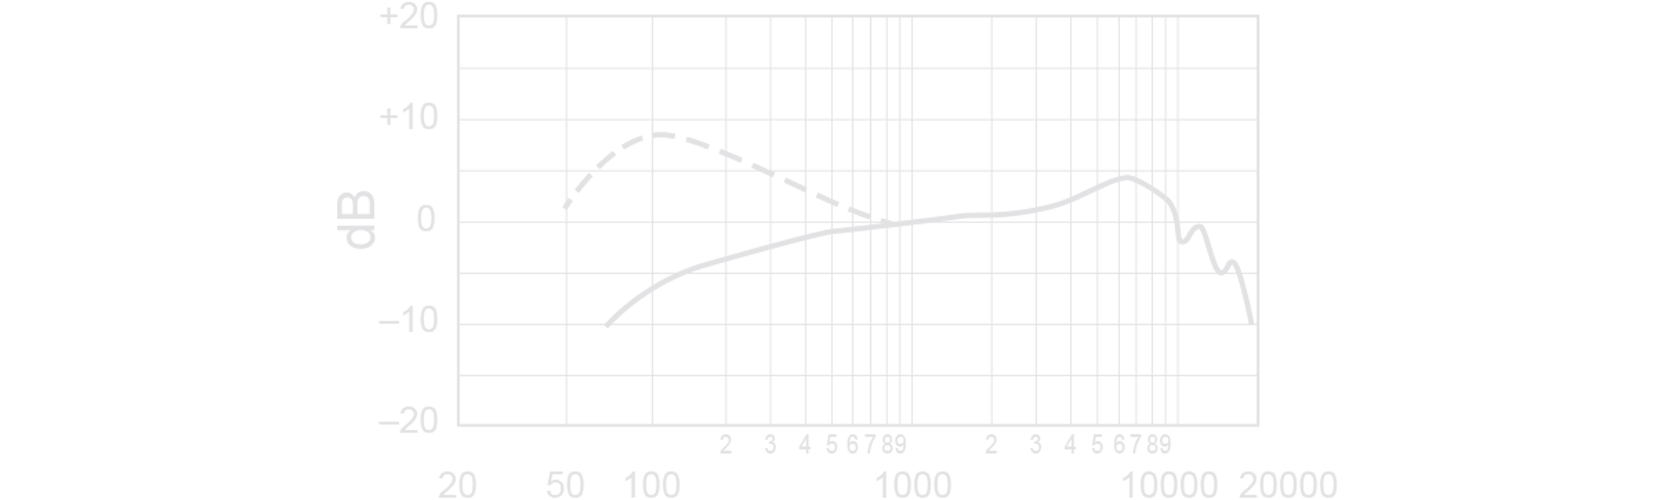 Shure SM87A Vocal Microphone Frequency Response Curve Image